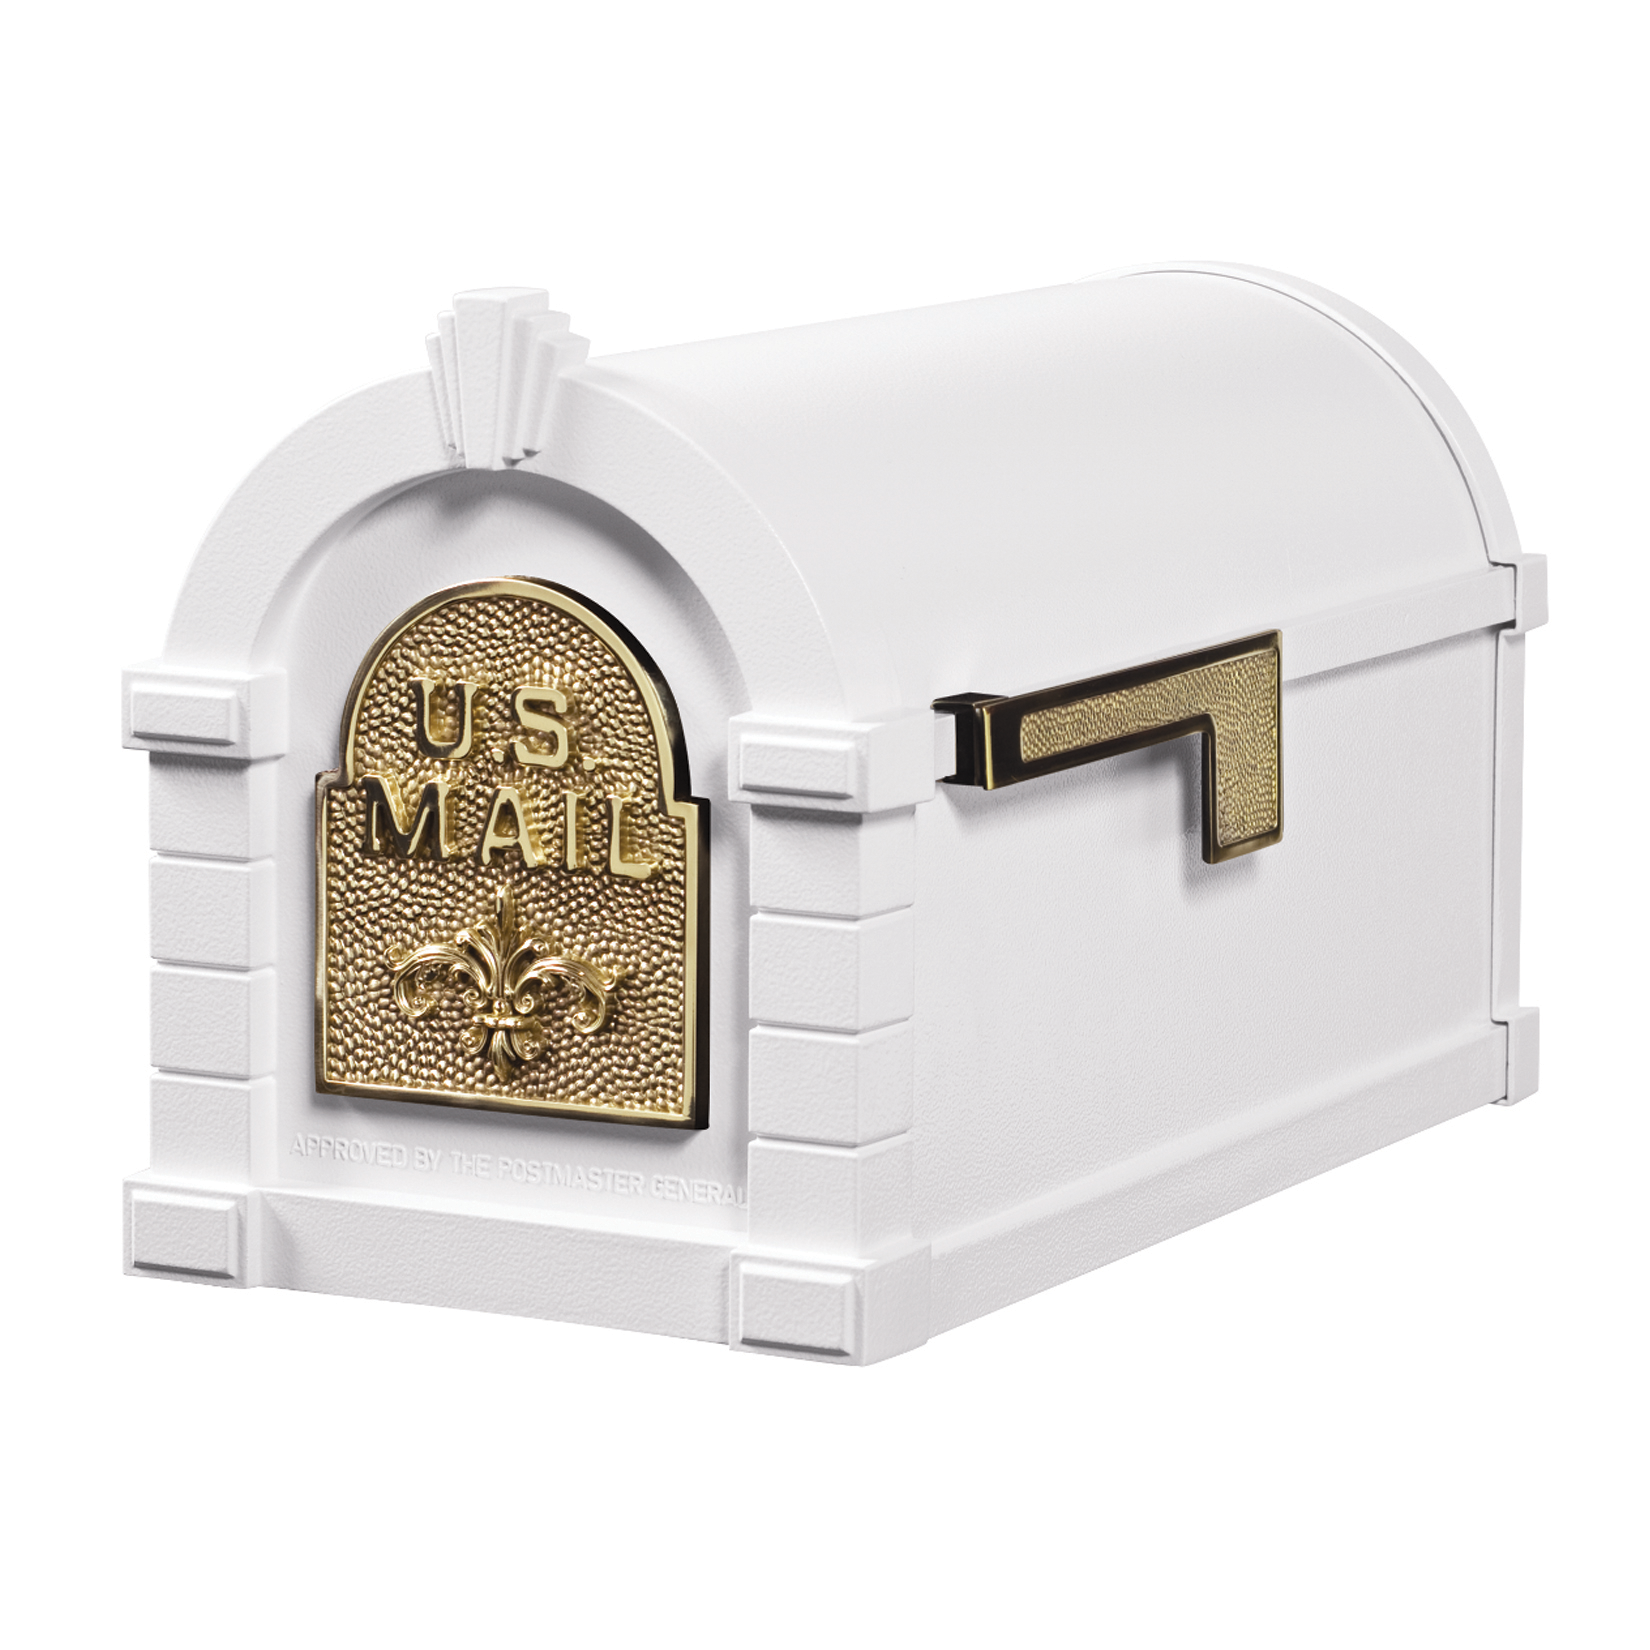 Gaines Fleur De Lis Keystone Mailboxes - White with Polished Brass